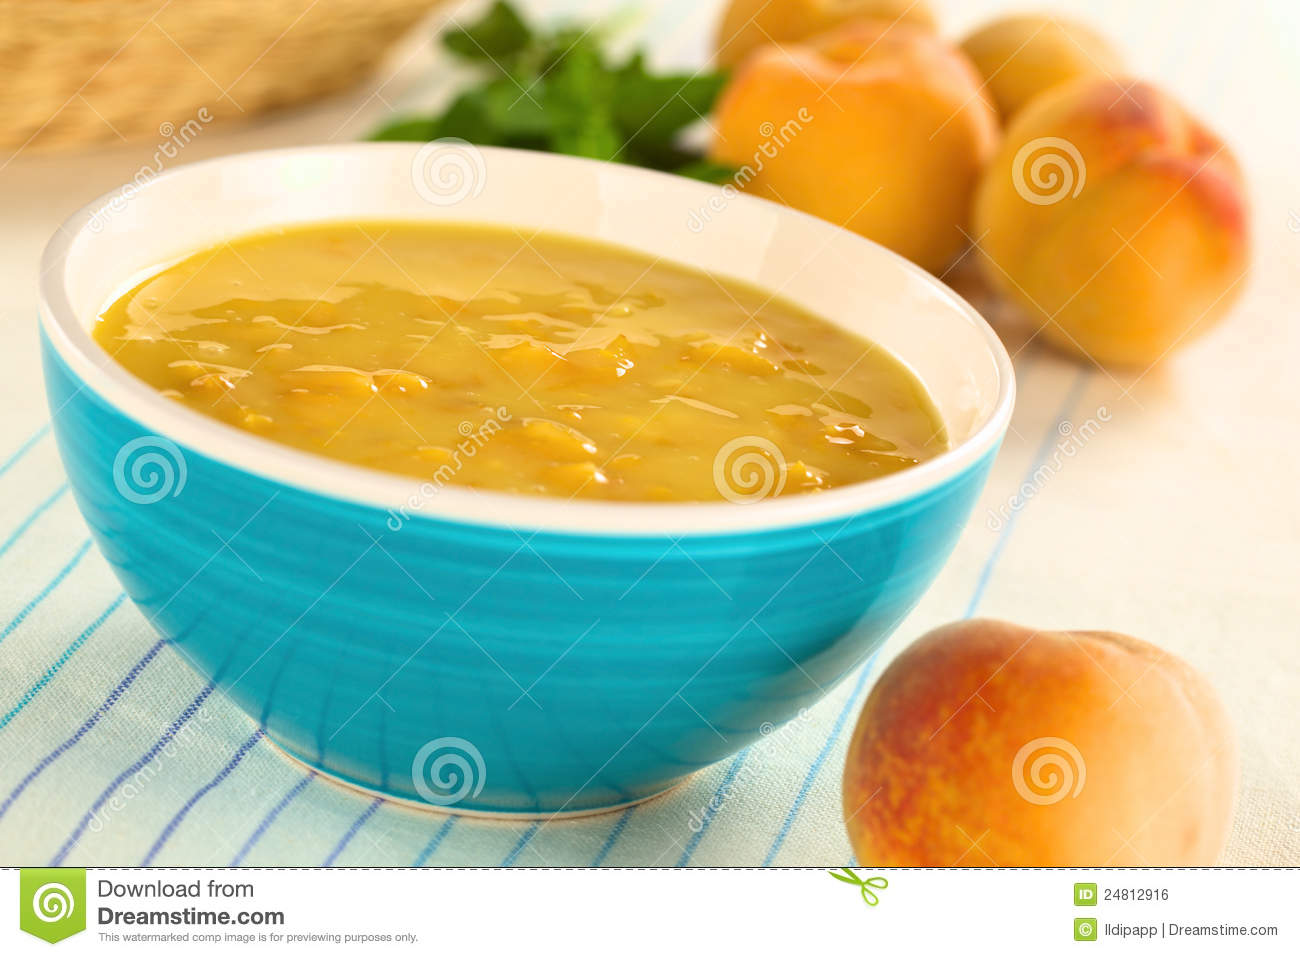 Cold Peach Soup Royalty Free Stock Image - Image: 24812916